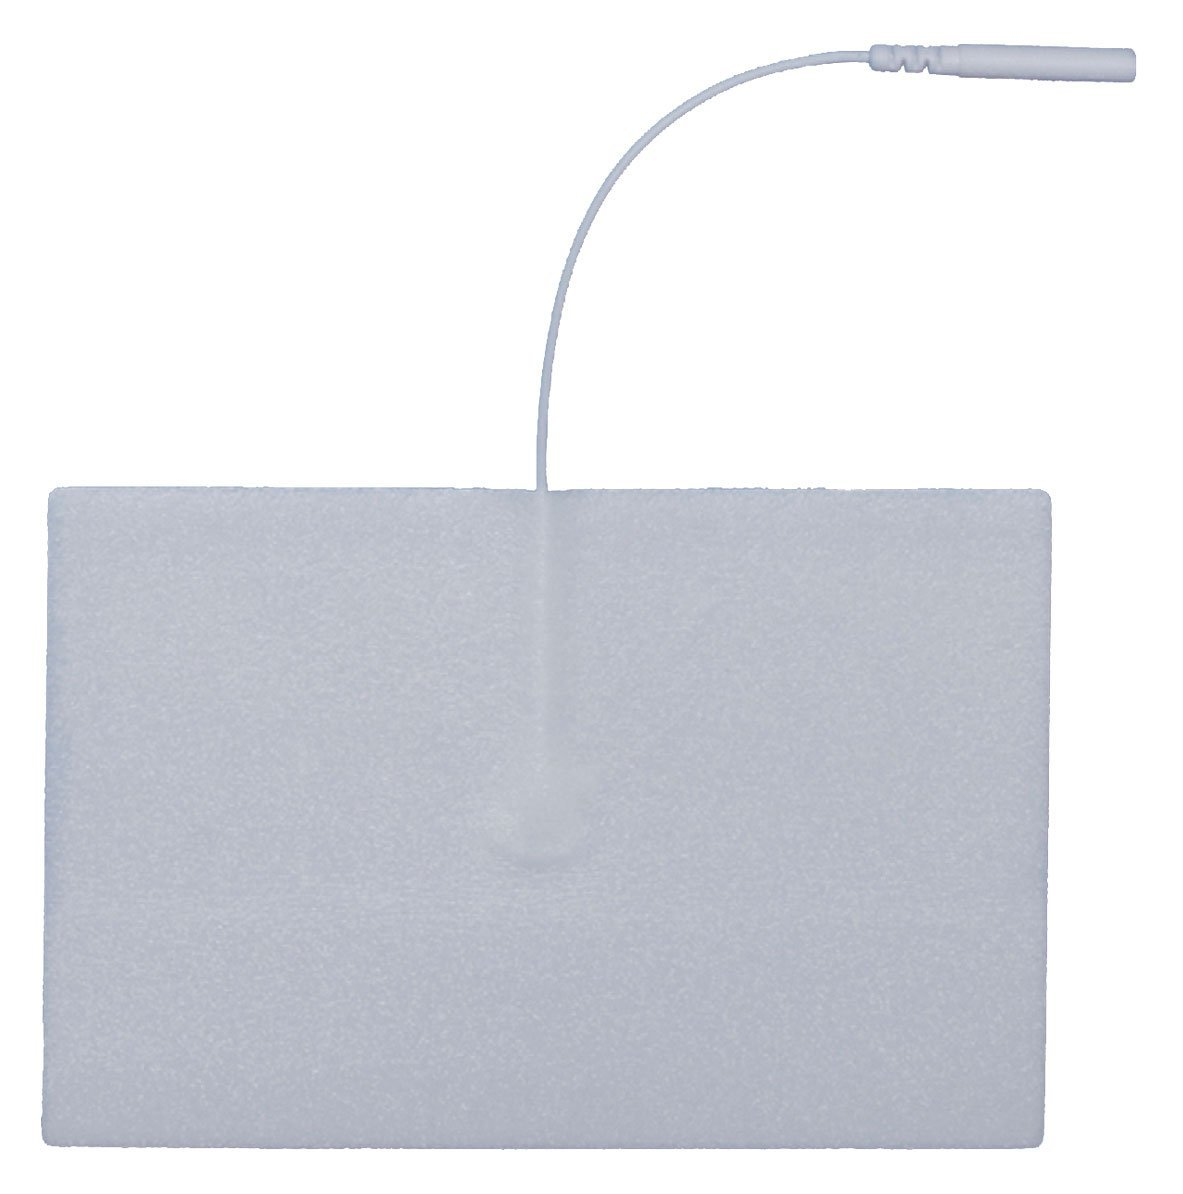 Patients Choice® Silver Foam 3 in. x 5 in. Rectangle, 2/pack